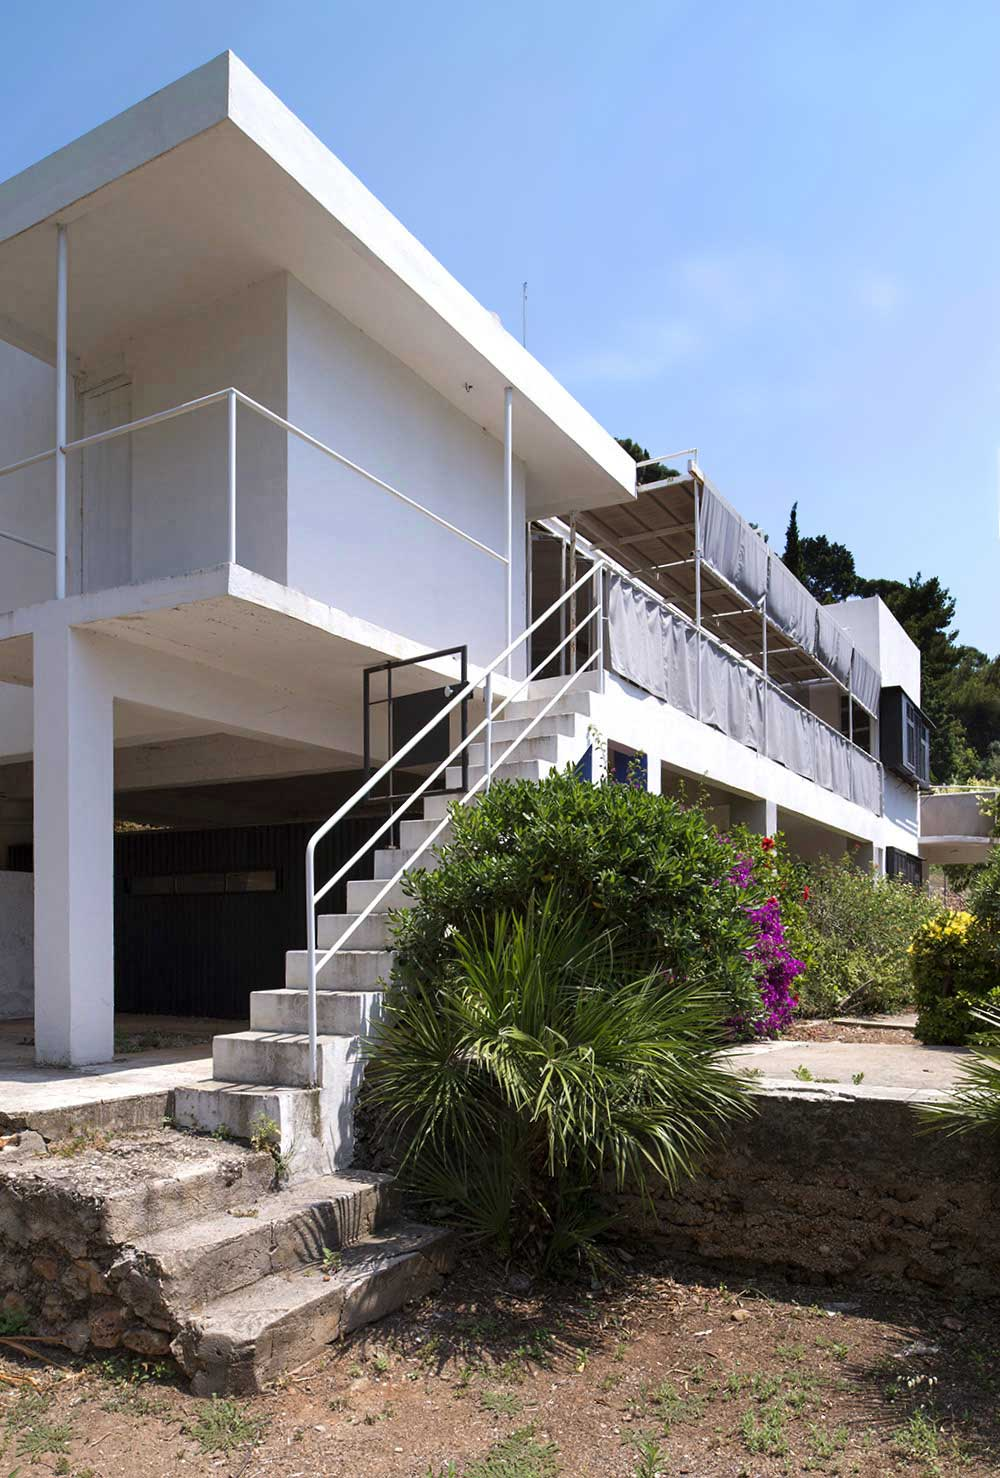 Restauration of Villa E 1027 by Eileen Gray. Photo by Tim Benton | Yellowtrace